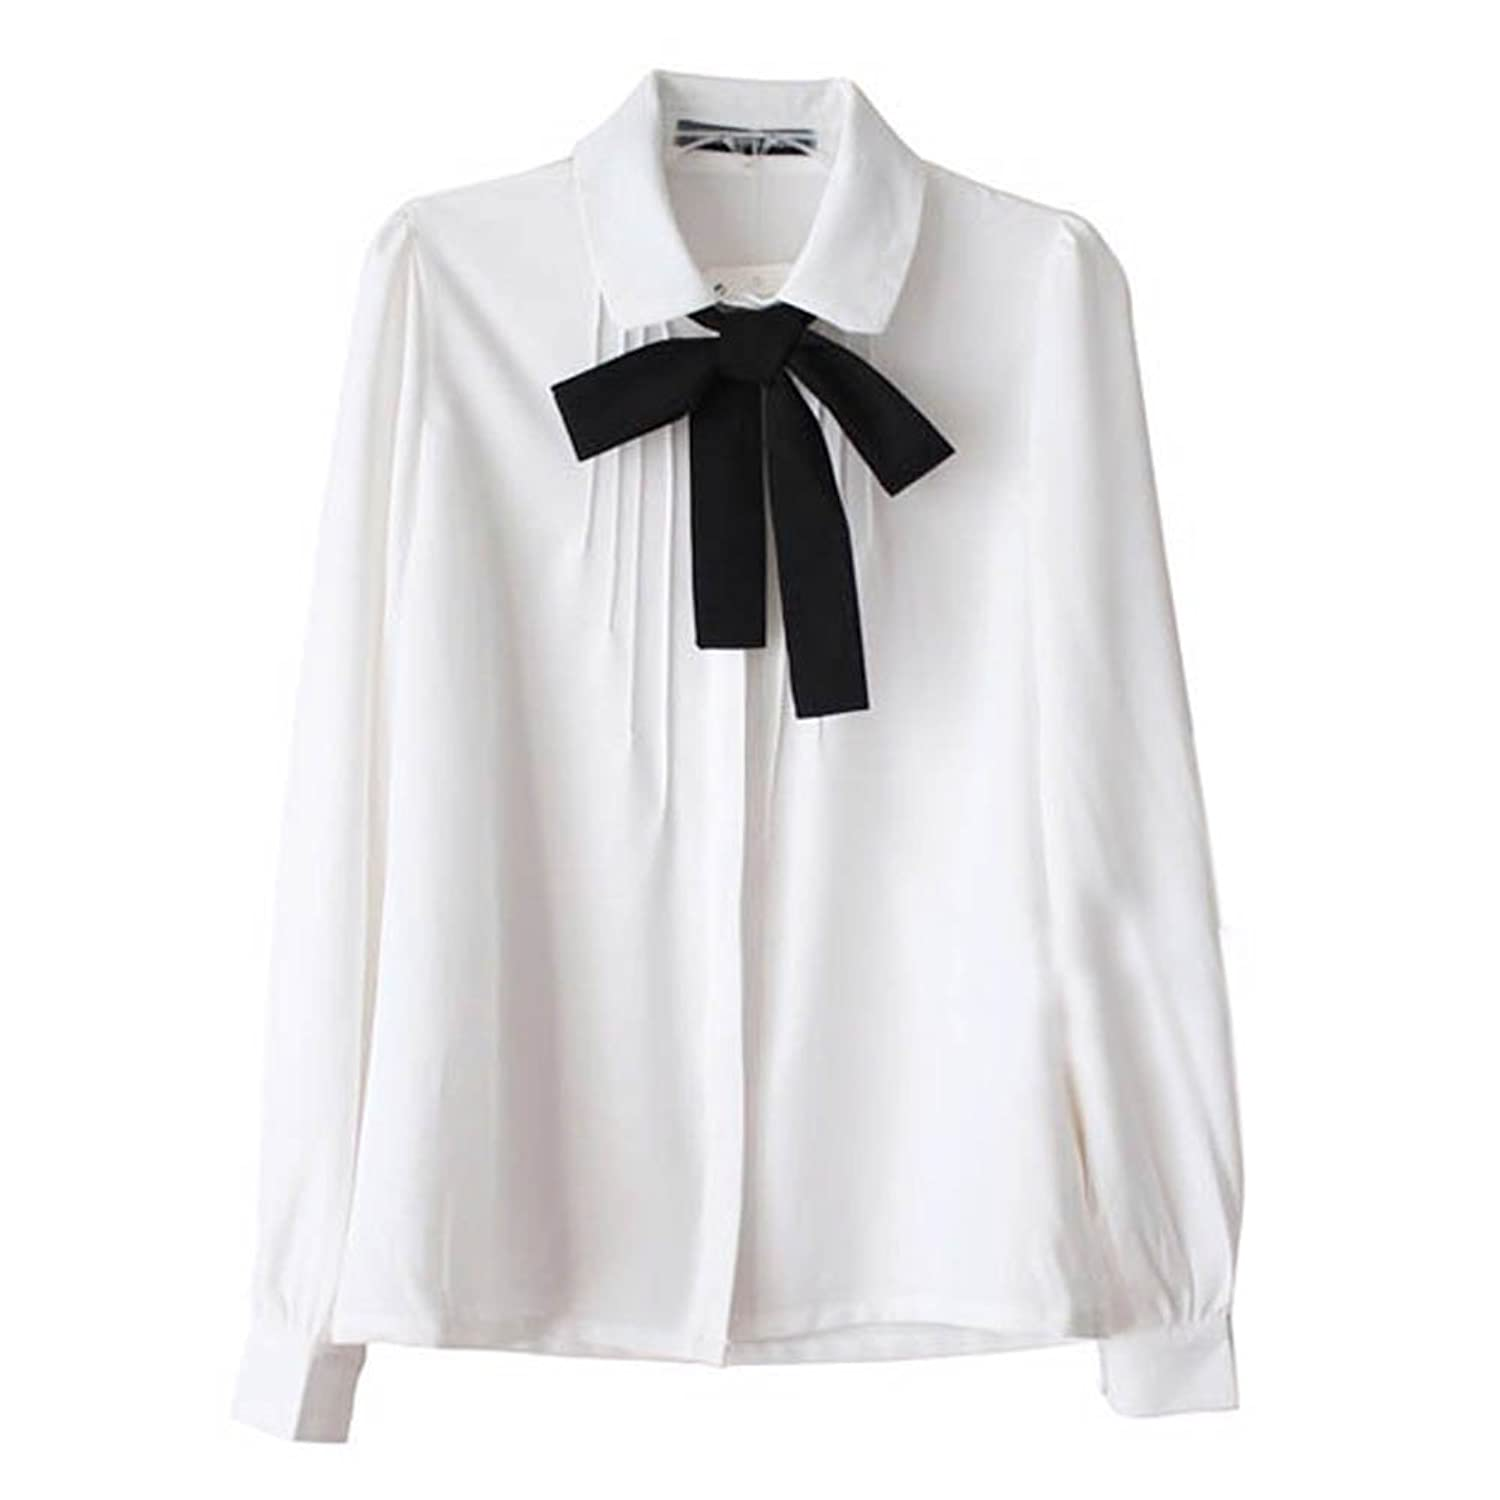 caa896e1b372b3 Edwardian Blouses | White & Black Lace Blouses & Sweaters Etosell Lady  Bowknot Baby Peter Pan. Etosell Lady Bowknot Baby Peter Pan Collar Shirt  Womens Long ...